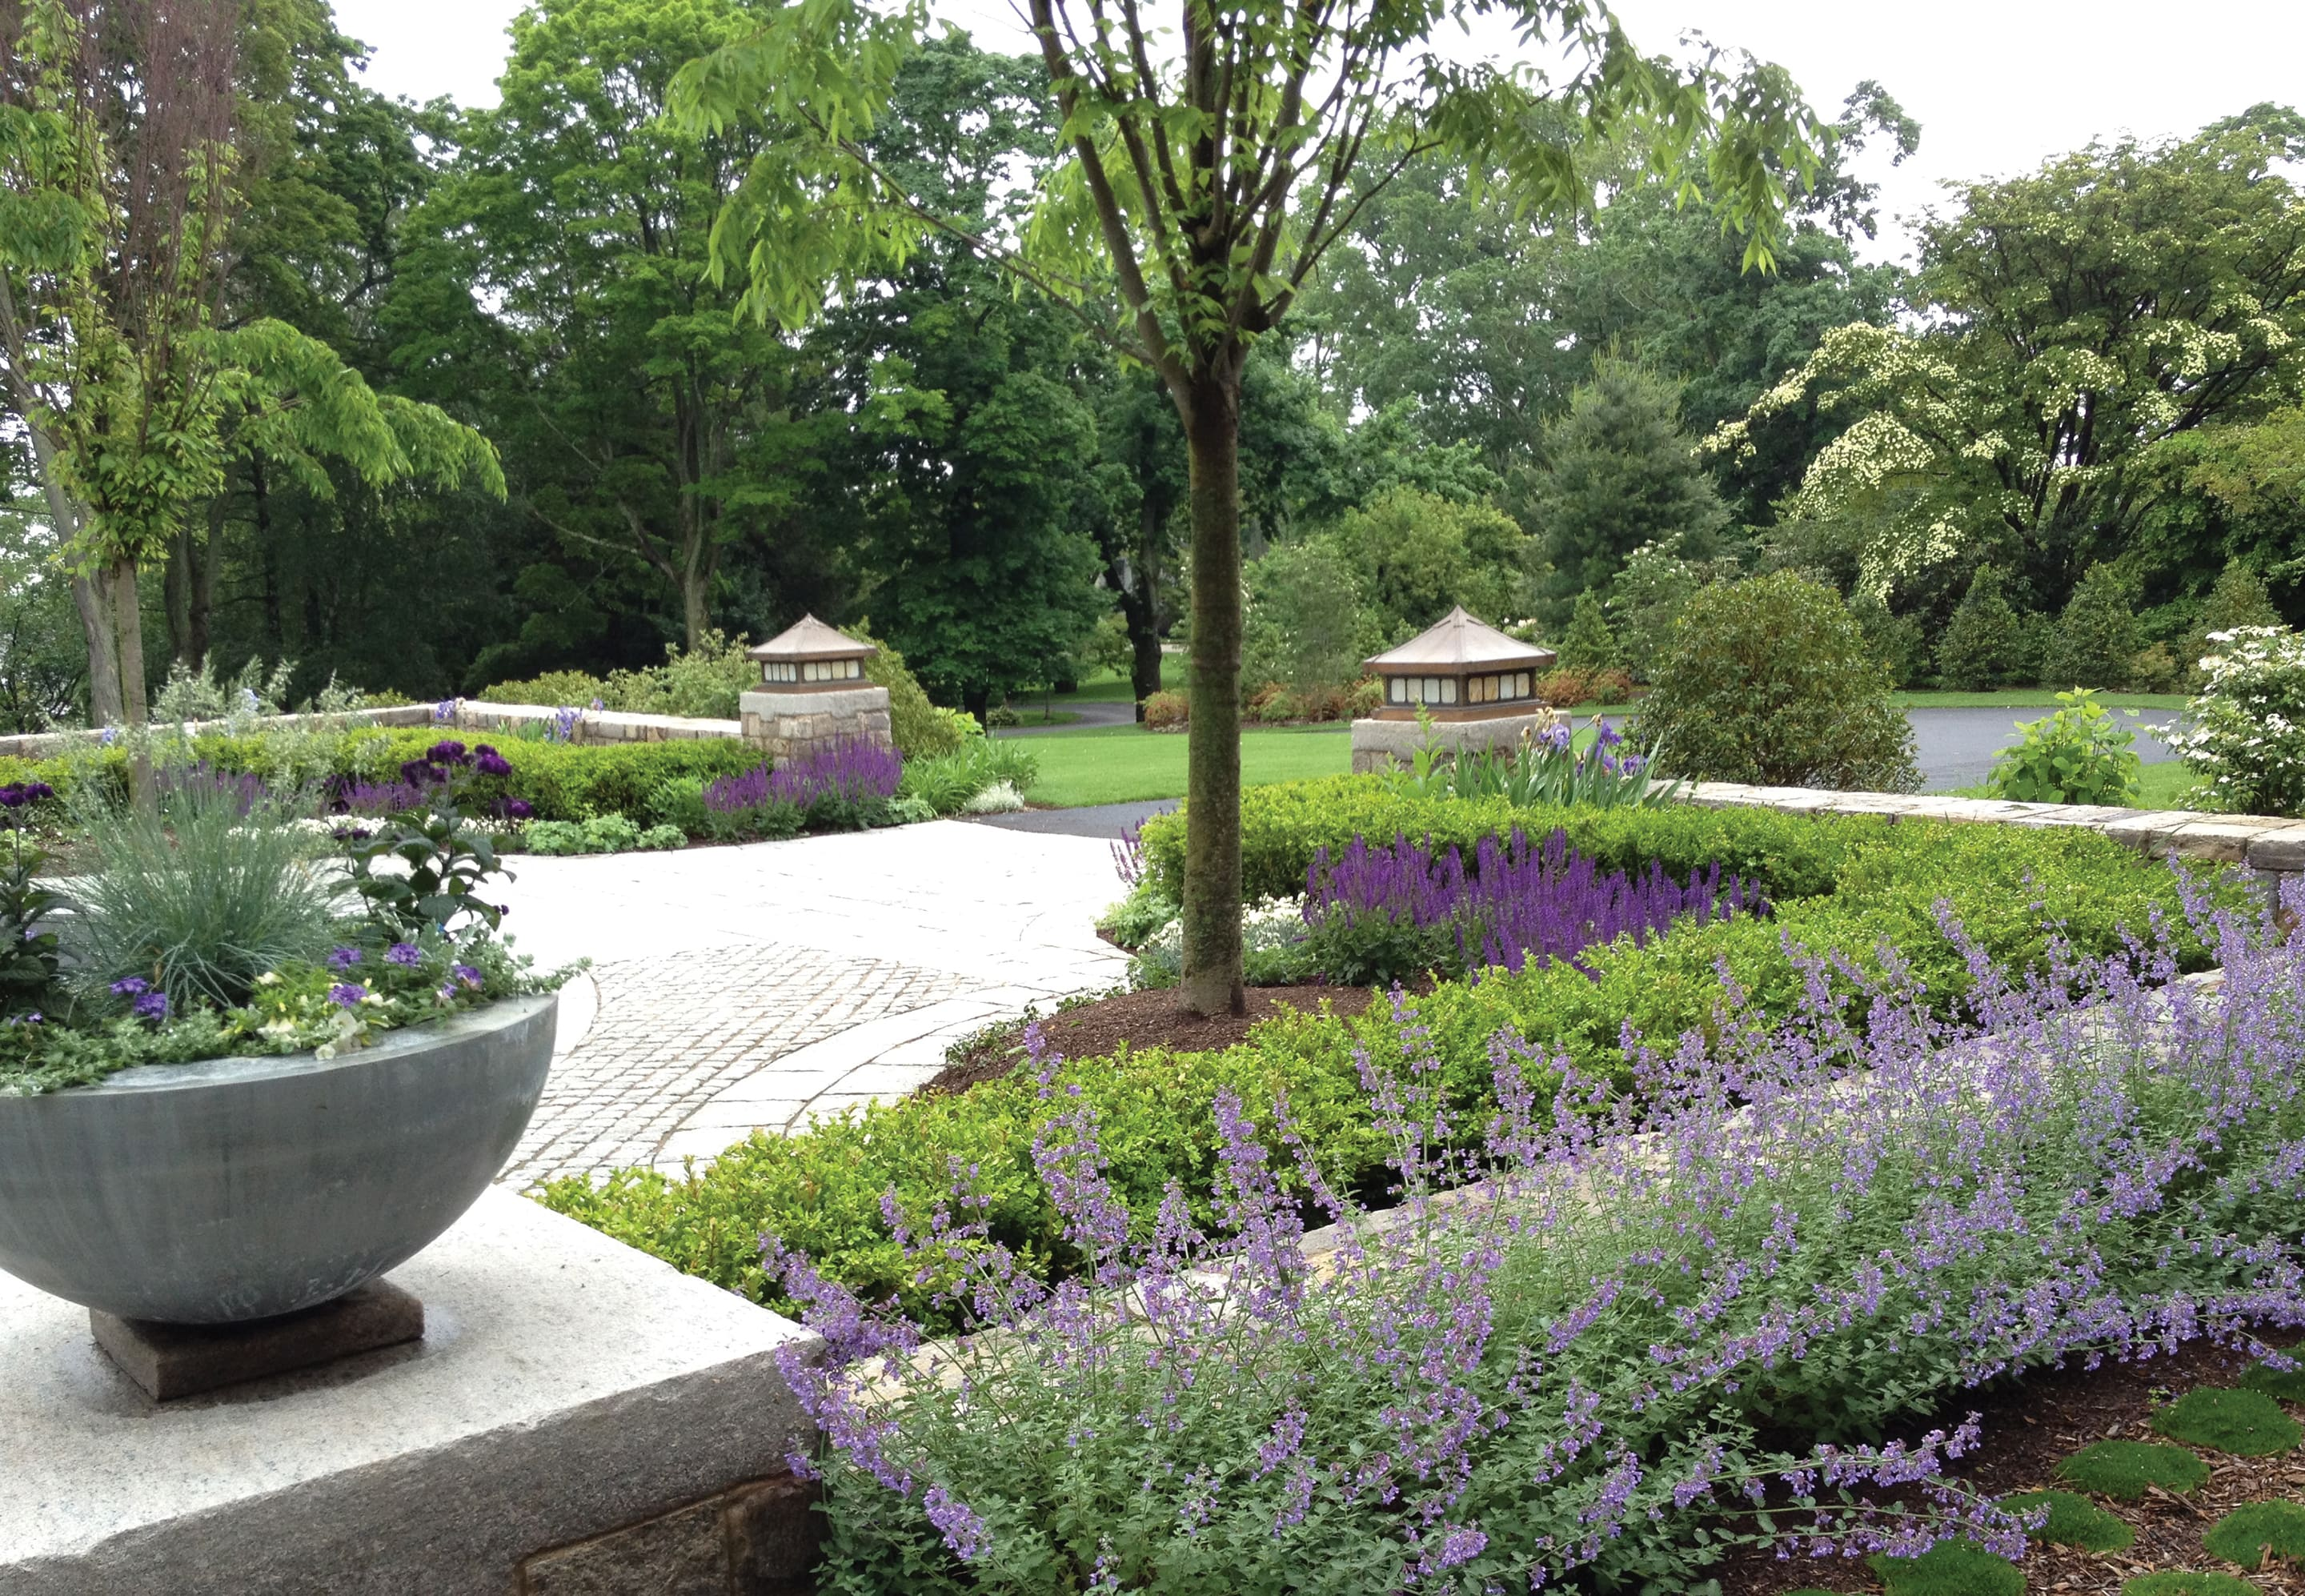 2018 Connecticut IDA Garden Design Finalist Gregory Lombardi Design Incorporated